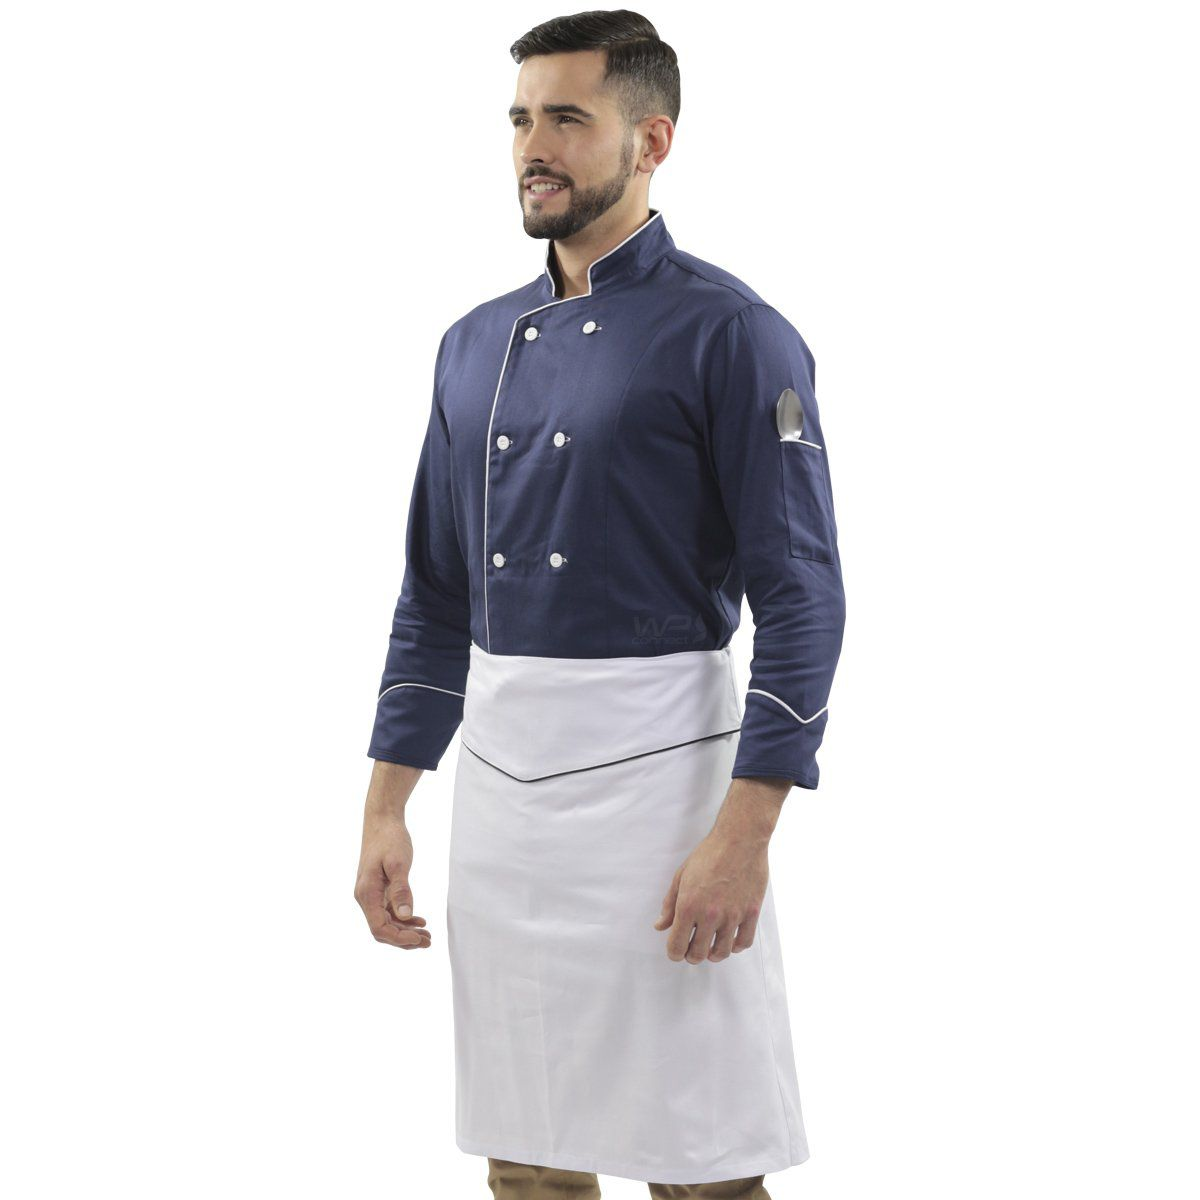 Kit Uniforme de Chef Dólmã Azul Blueberry Avental de Cintura Branco